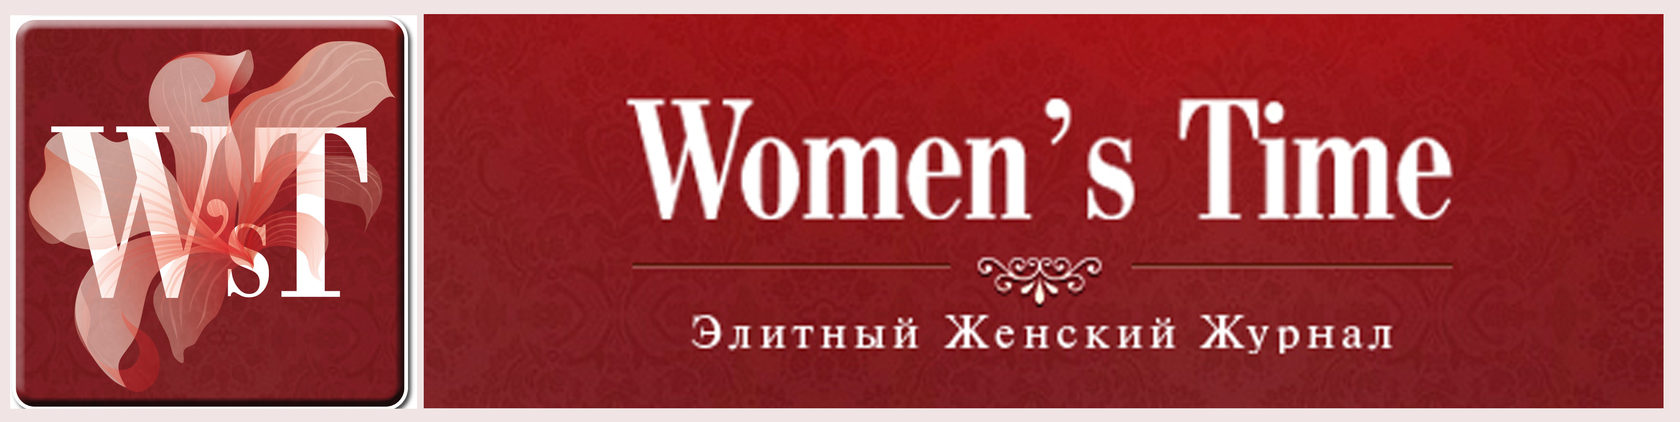 Women's Time